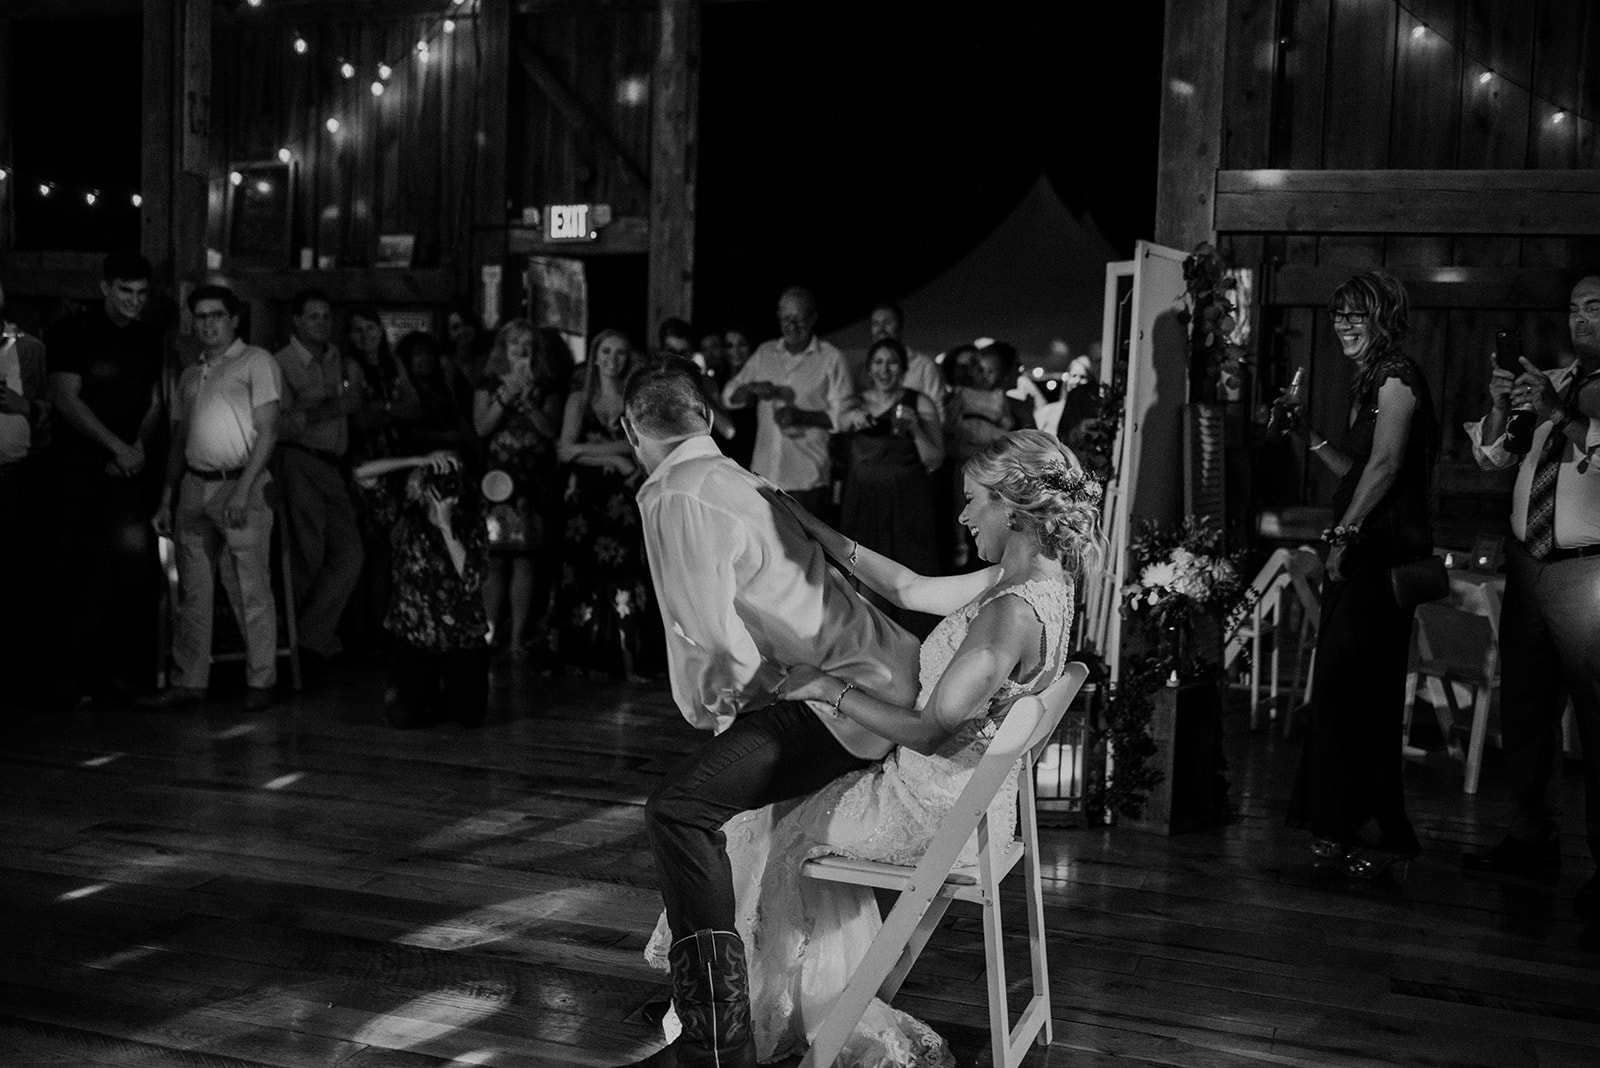 overthevineswisconsinwedding_1516.jpg